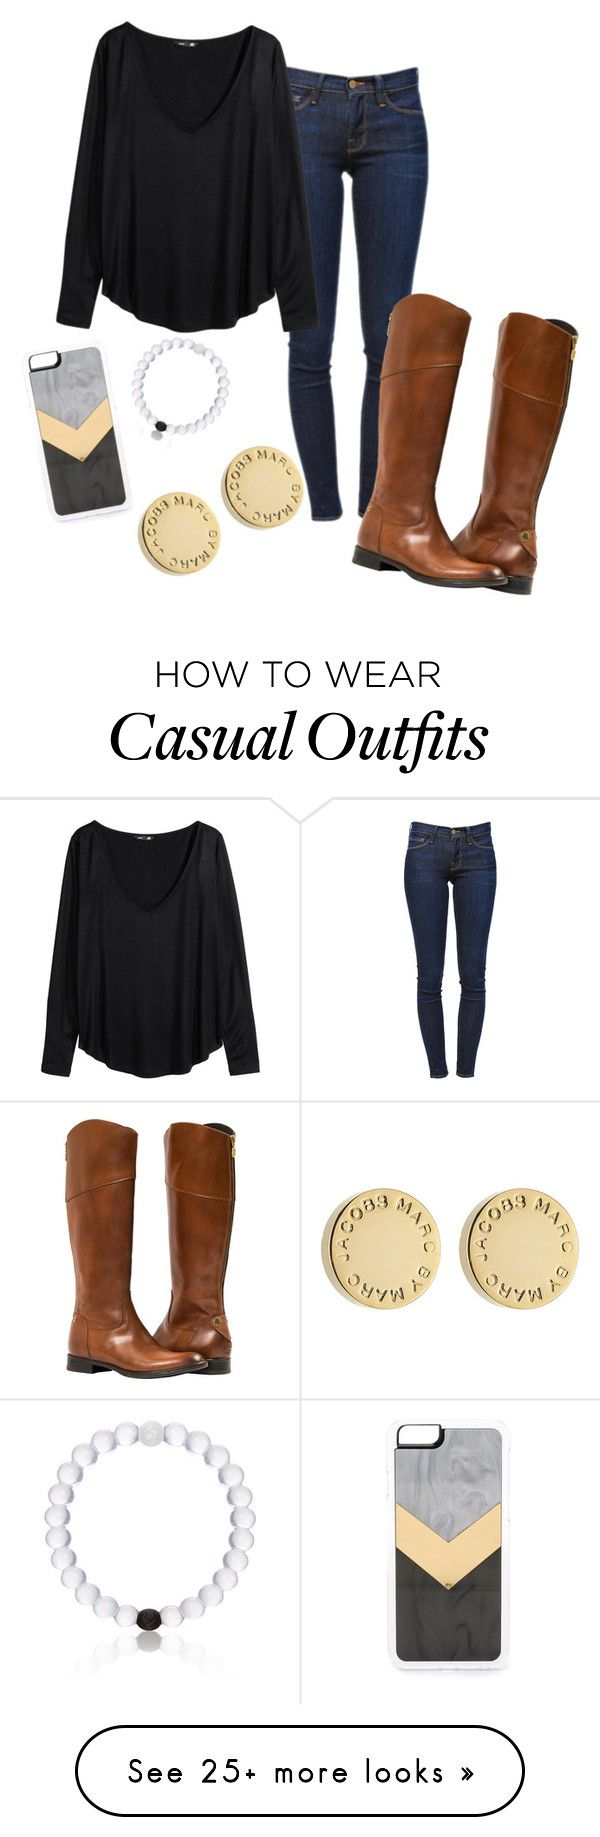 """""""Casual attire"""" by savystyle26 on Polyvore featuring Frame Denim, H&M, Zero Gravity, Everest and Marc by Marc Jacobs"""